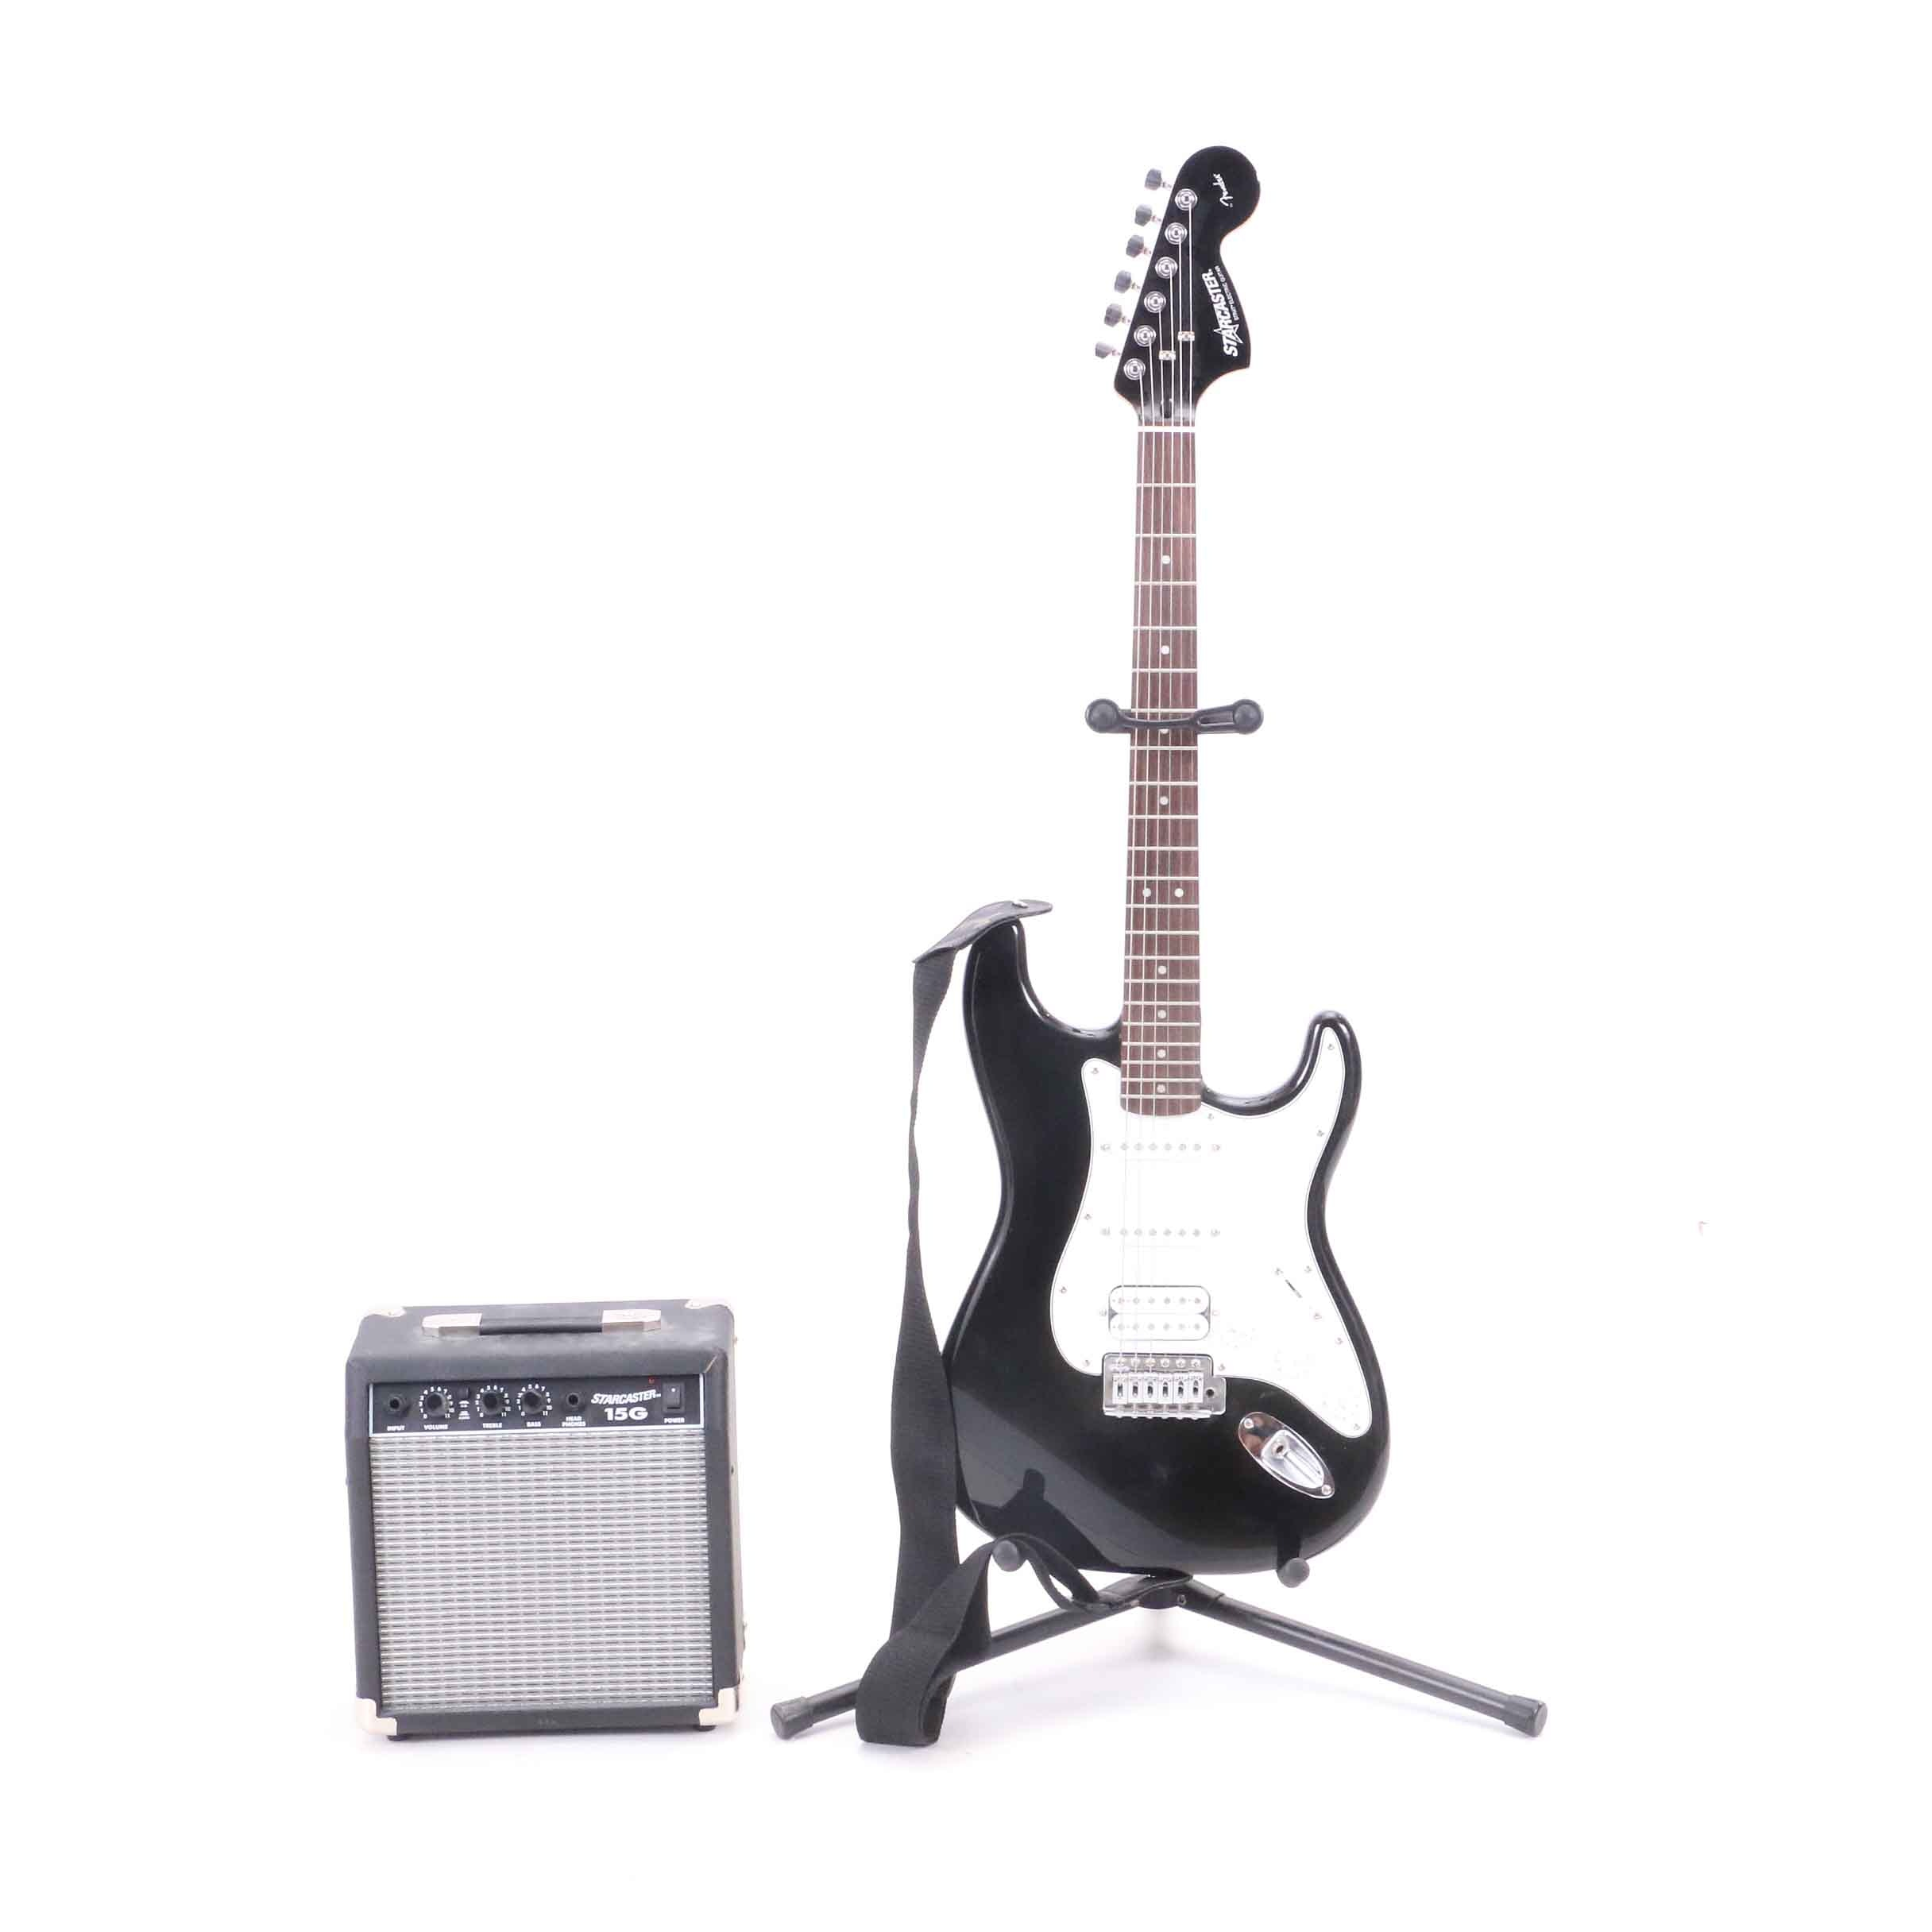 Starcaster Electric Guitar by Fender, Stand And Amplifier